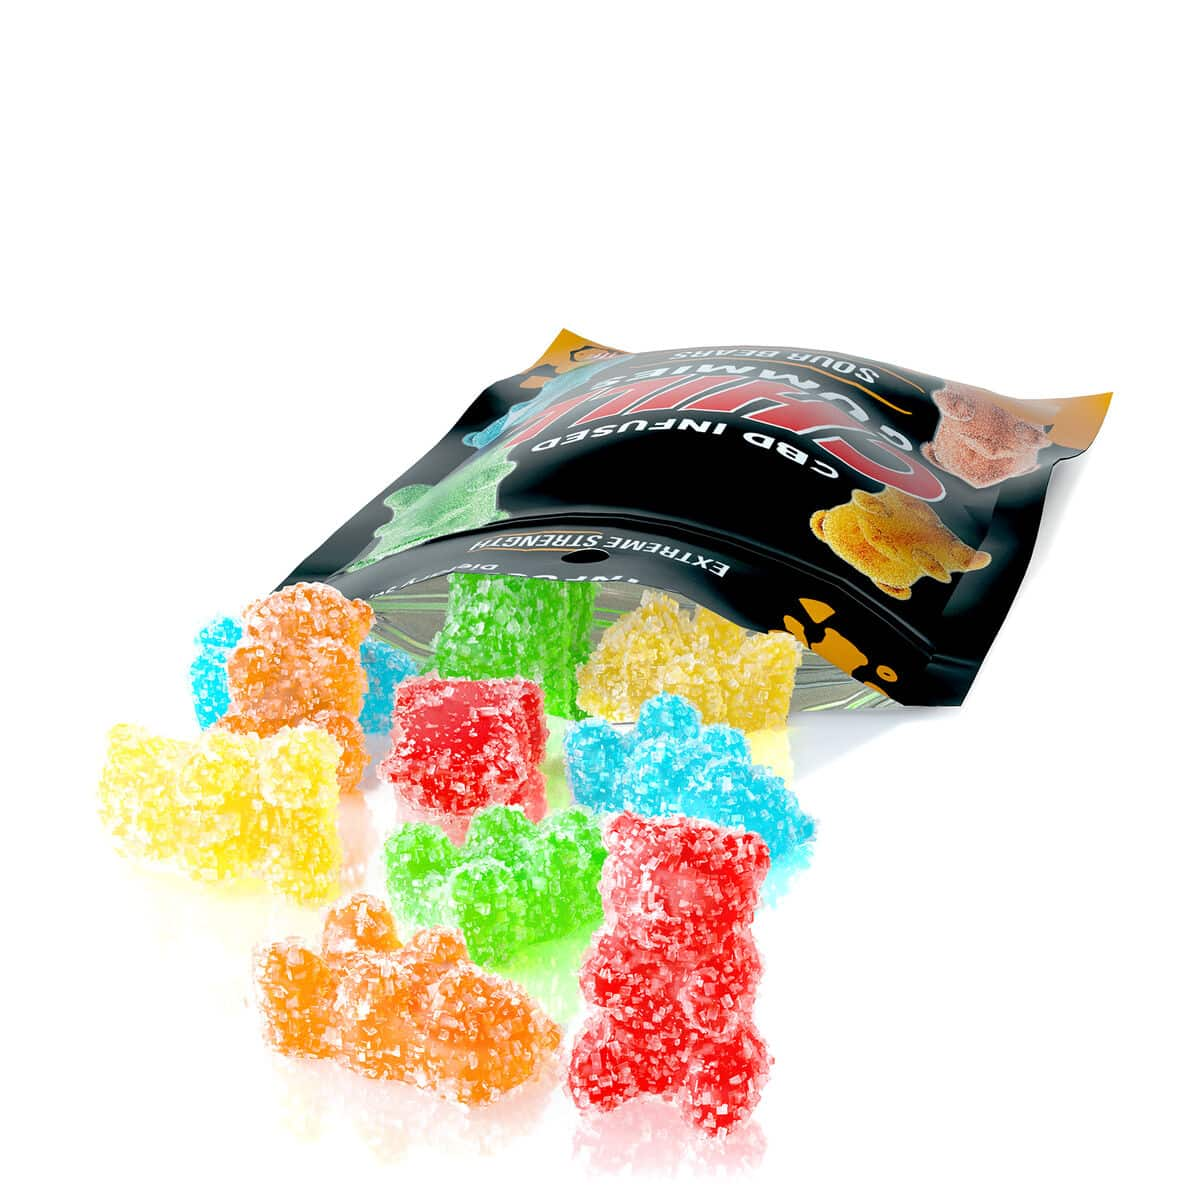 chill-gummies-cbd-infused-sour-bears-150mg_1 (1)